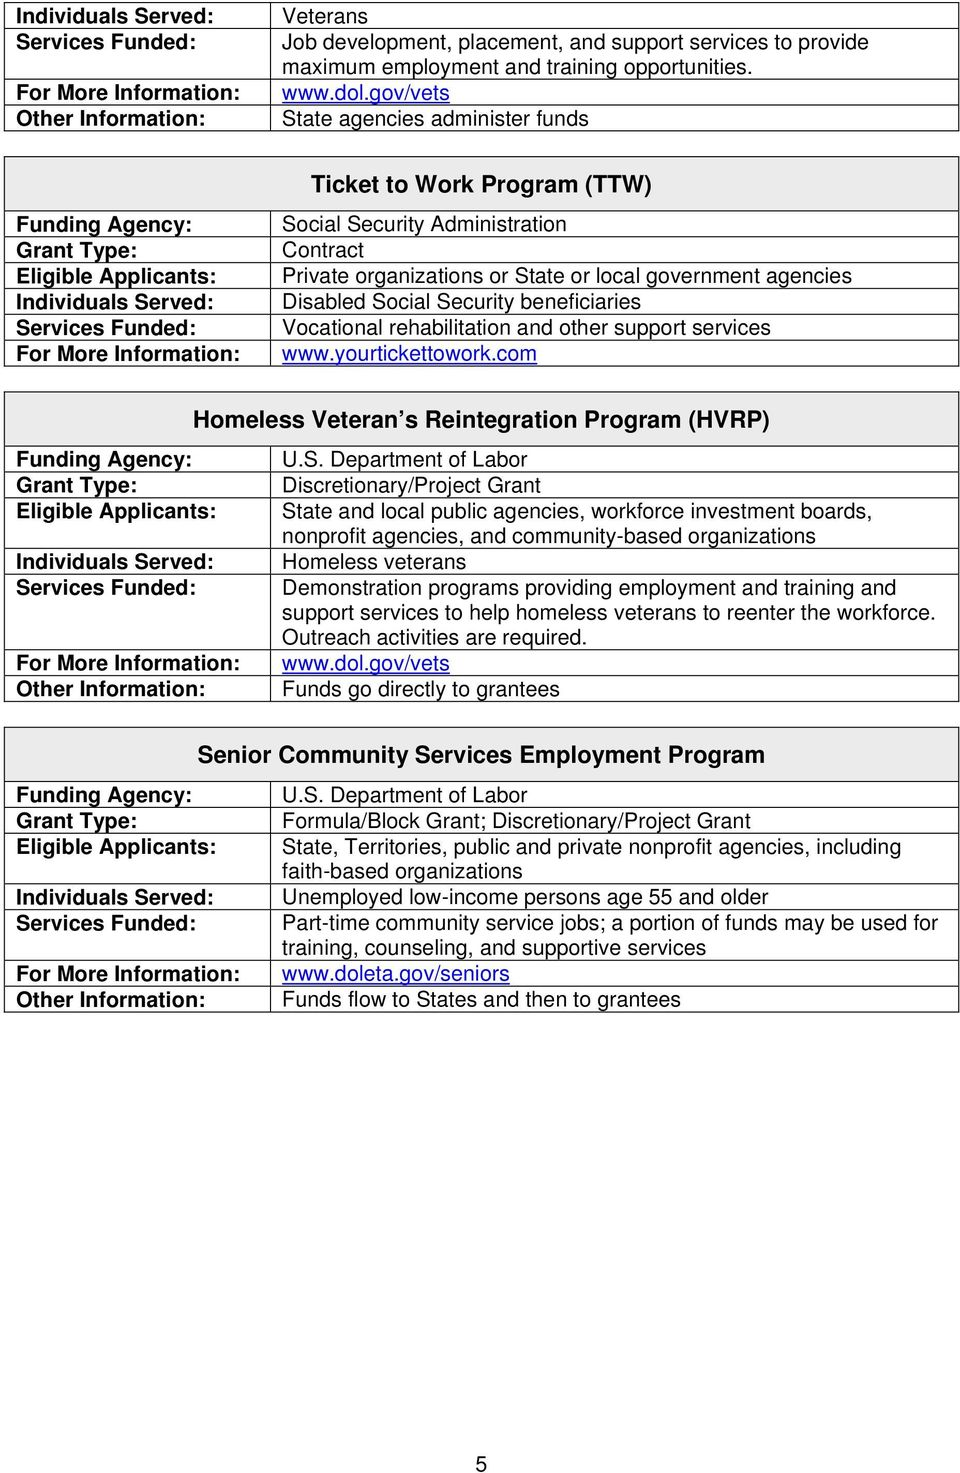 Federal Programs That Can Fund Employment for Homeless